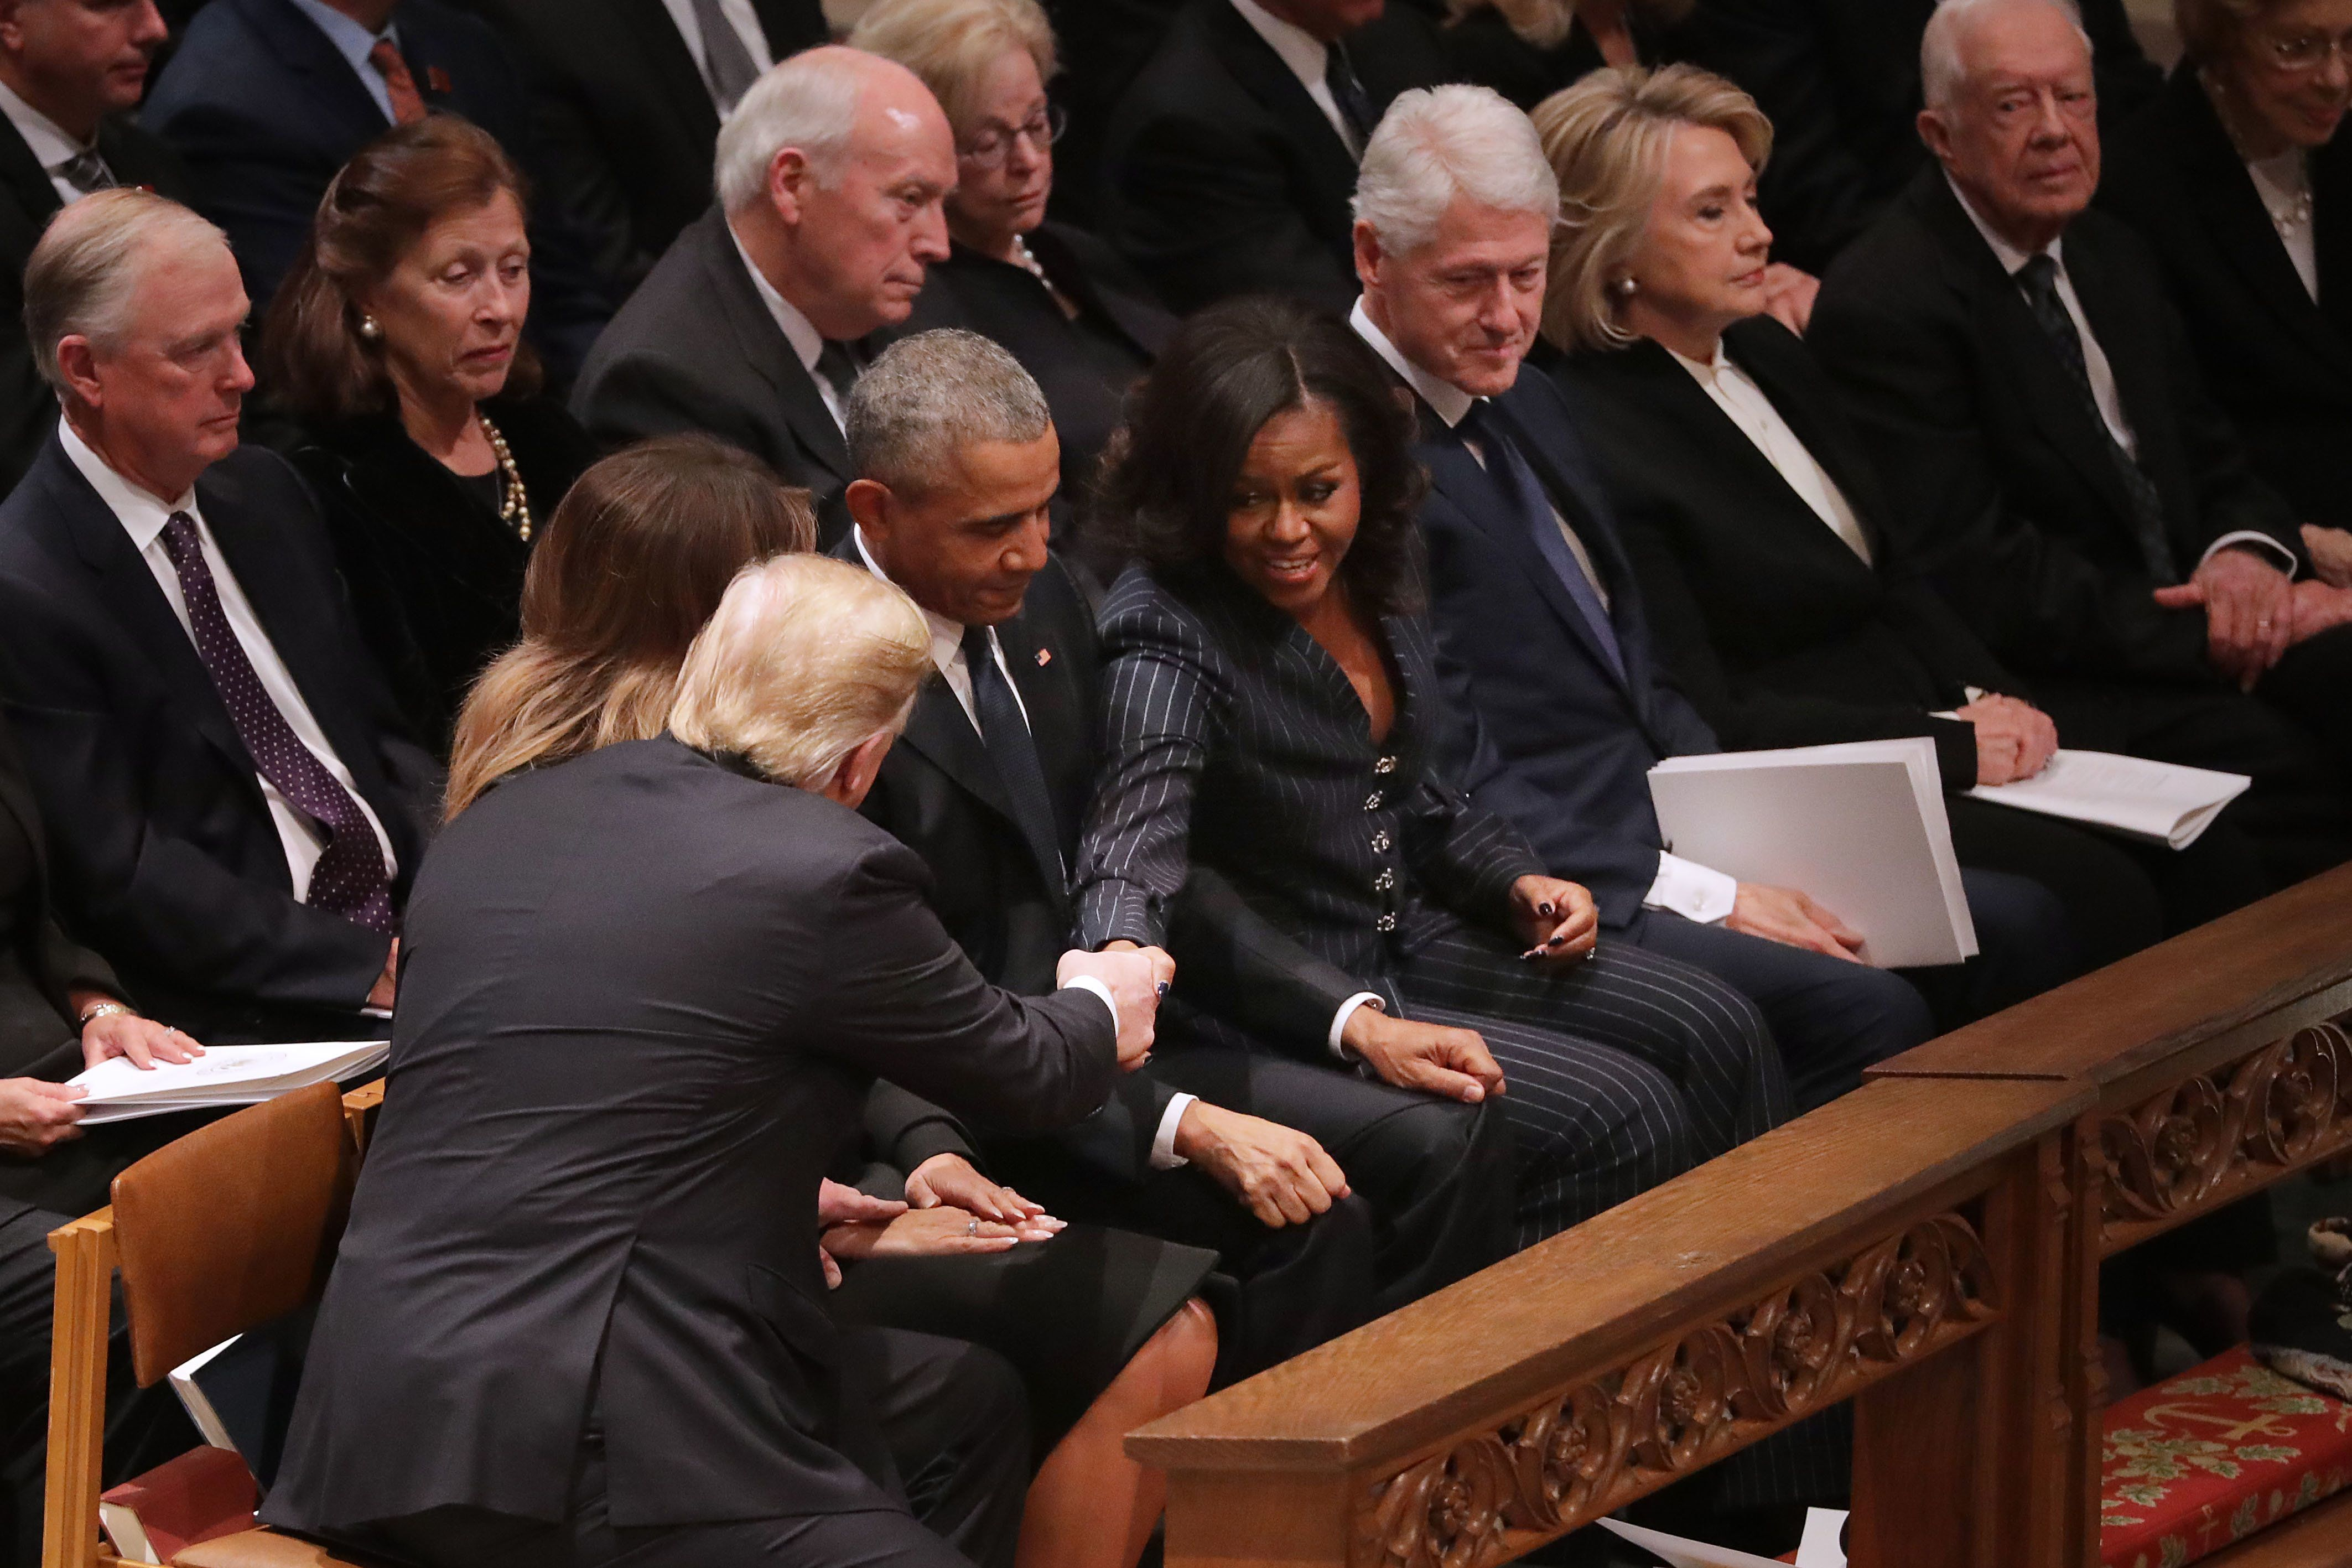 WASHINGTON, DC - DECEMBER 05:  President Donald Trump and first lady Melania Trump greet former President Barack Obama and Michelle Obama as they join other former presidents and vice presidents and their spouses for the state funeral for former President George H.W. Bush at the National Cathedral December 05, 2018 in Washington, DC. A WWII combat veteran, Bush served as a member of Congress from Texas, ambassador to the United Nations, director of the CIA, vice president and 41st president of the United States.  (Photo by Chip Somodevilla/Getty Images)